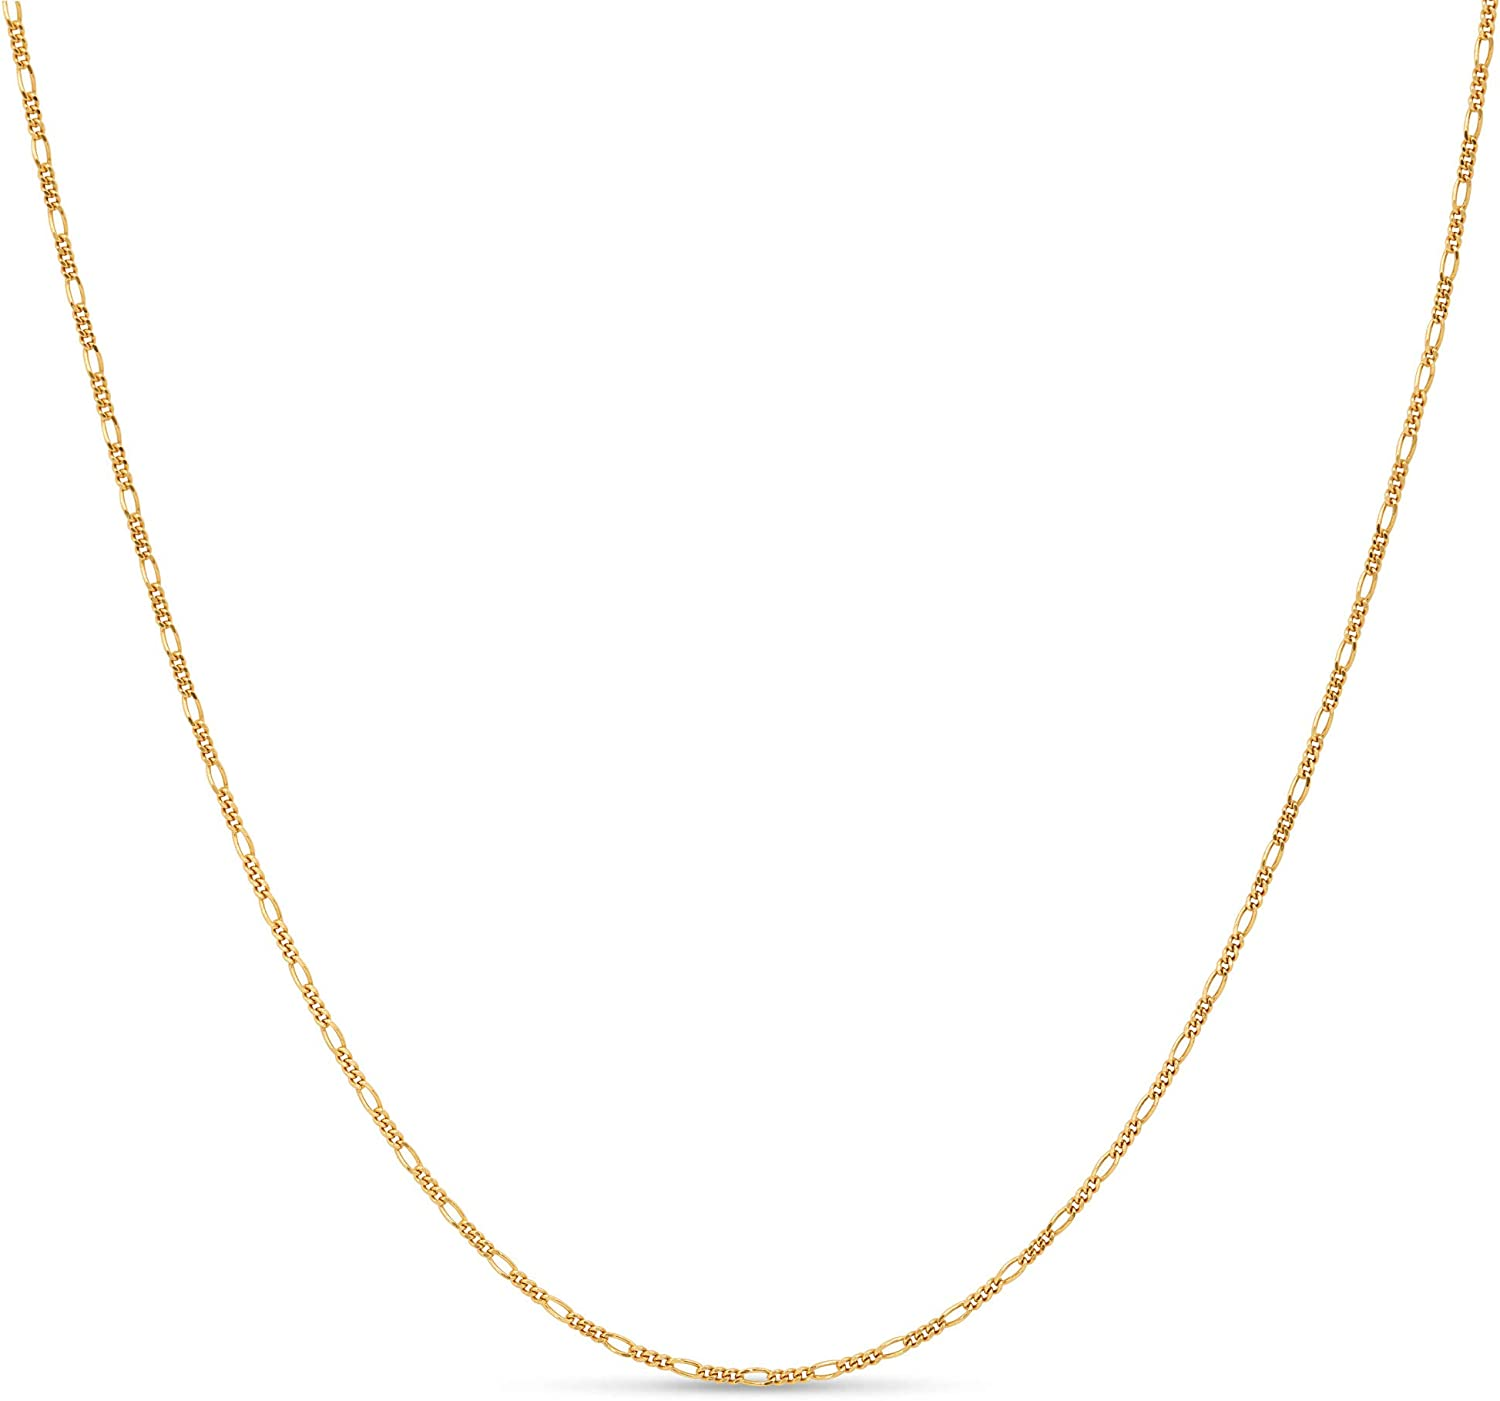 Kezef Creations Sterling Silver Italian Figaro Chain 1.5mm for M